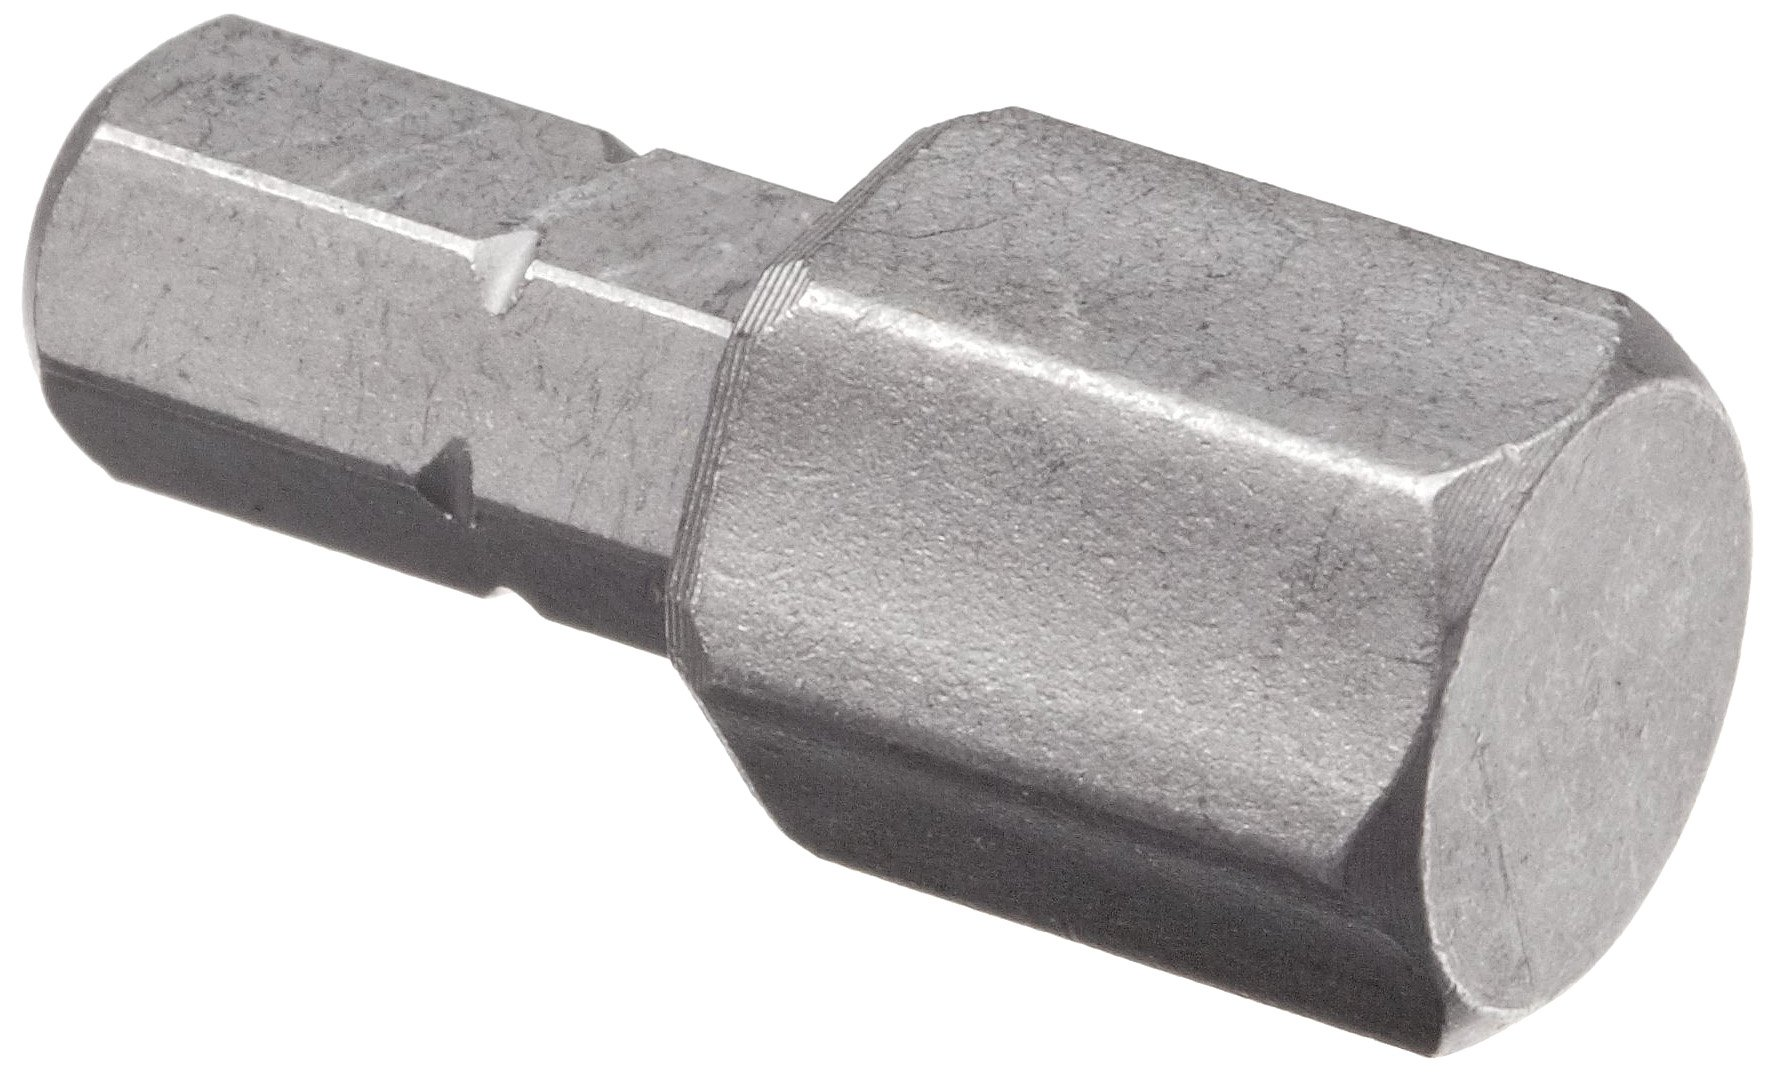 "Wera Series 1 840/1 Z Sheet Metal Bit, Hexagon 10mm Head x 1/4"" Drive"